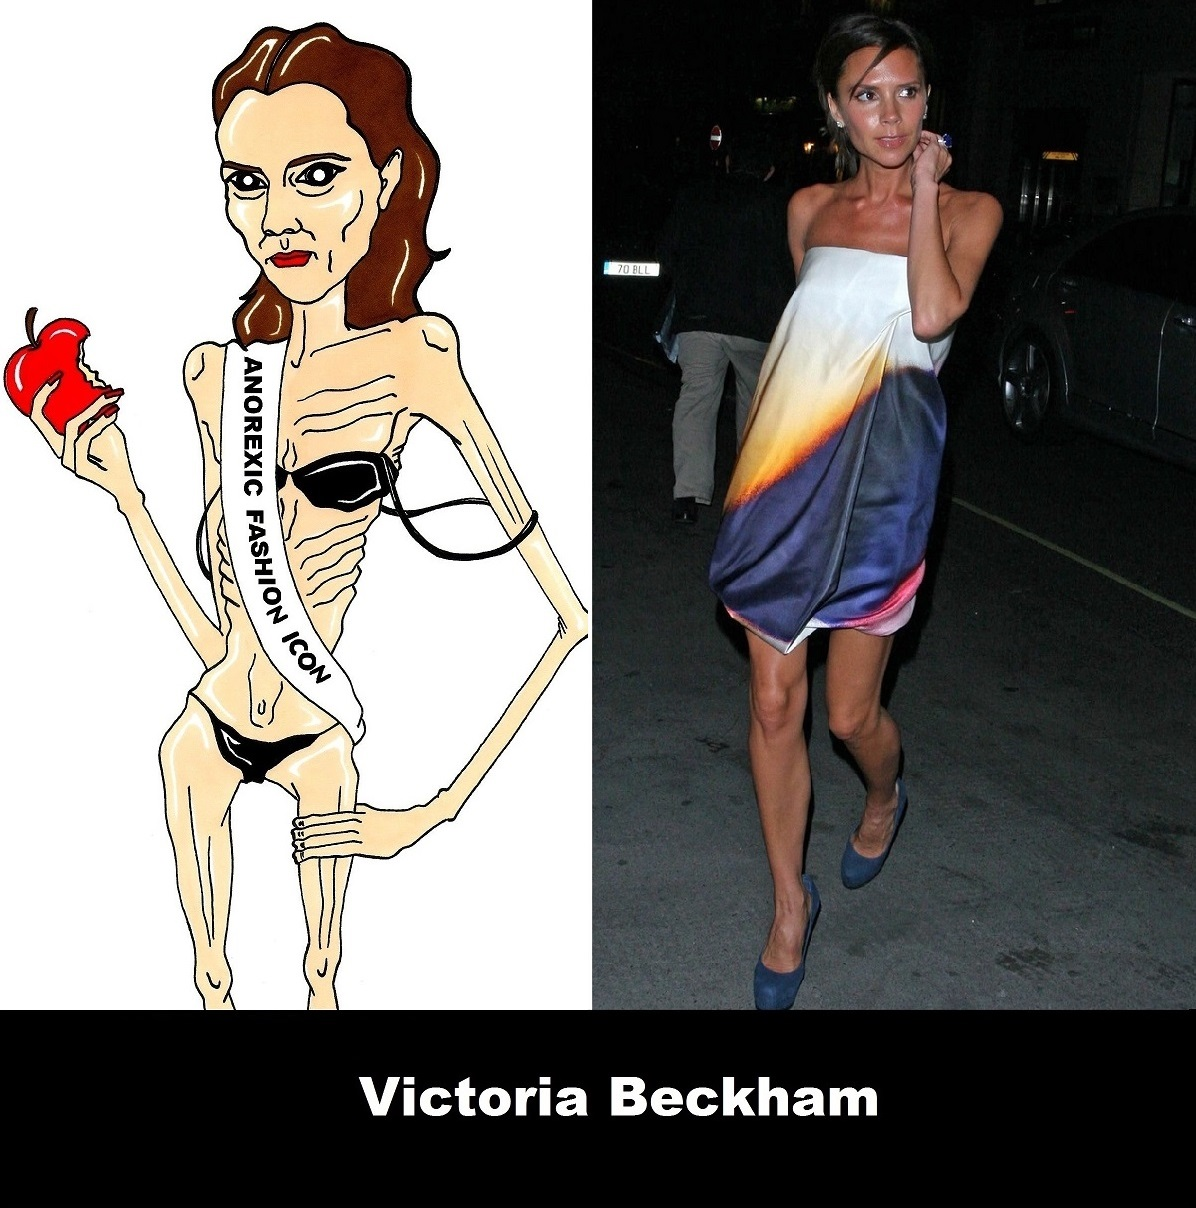 http://3.bp.blogspot.com/-FipiPtdnYNI/UXK39MZObjI/AAAAAAAAM94/RRIqgxKsJKo/s1600/Victoria+Beckham++the+most+influential+Anorexic+Fashion+icon+ever+Anorexia+Kills+Portrait+Art+Satire+Critic++Humor+Chic+by+aleXsandro+Palombo+1.jpg